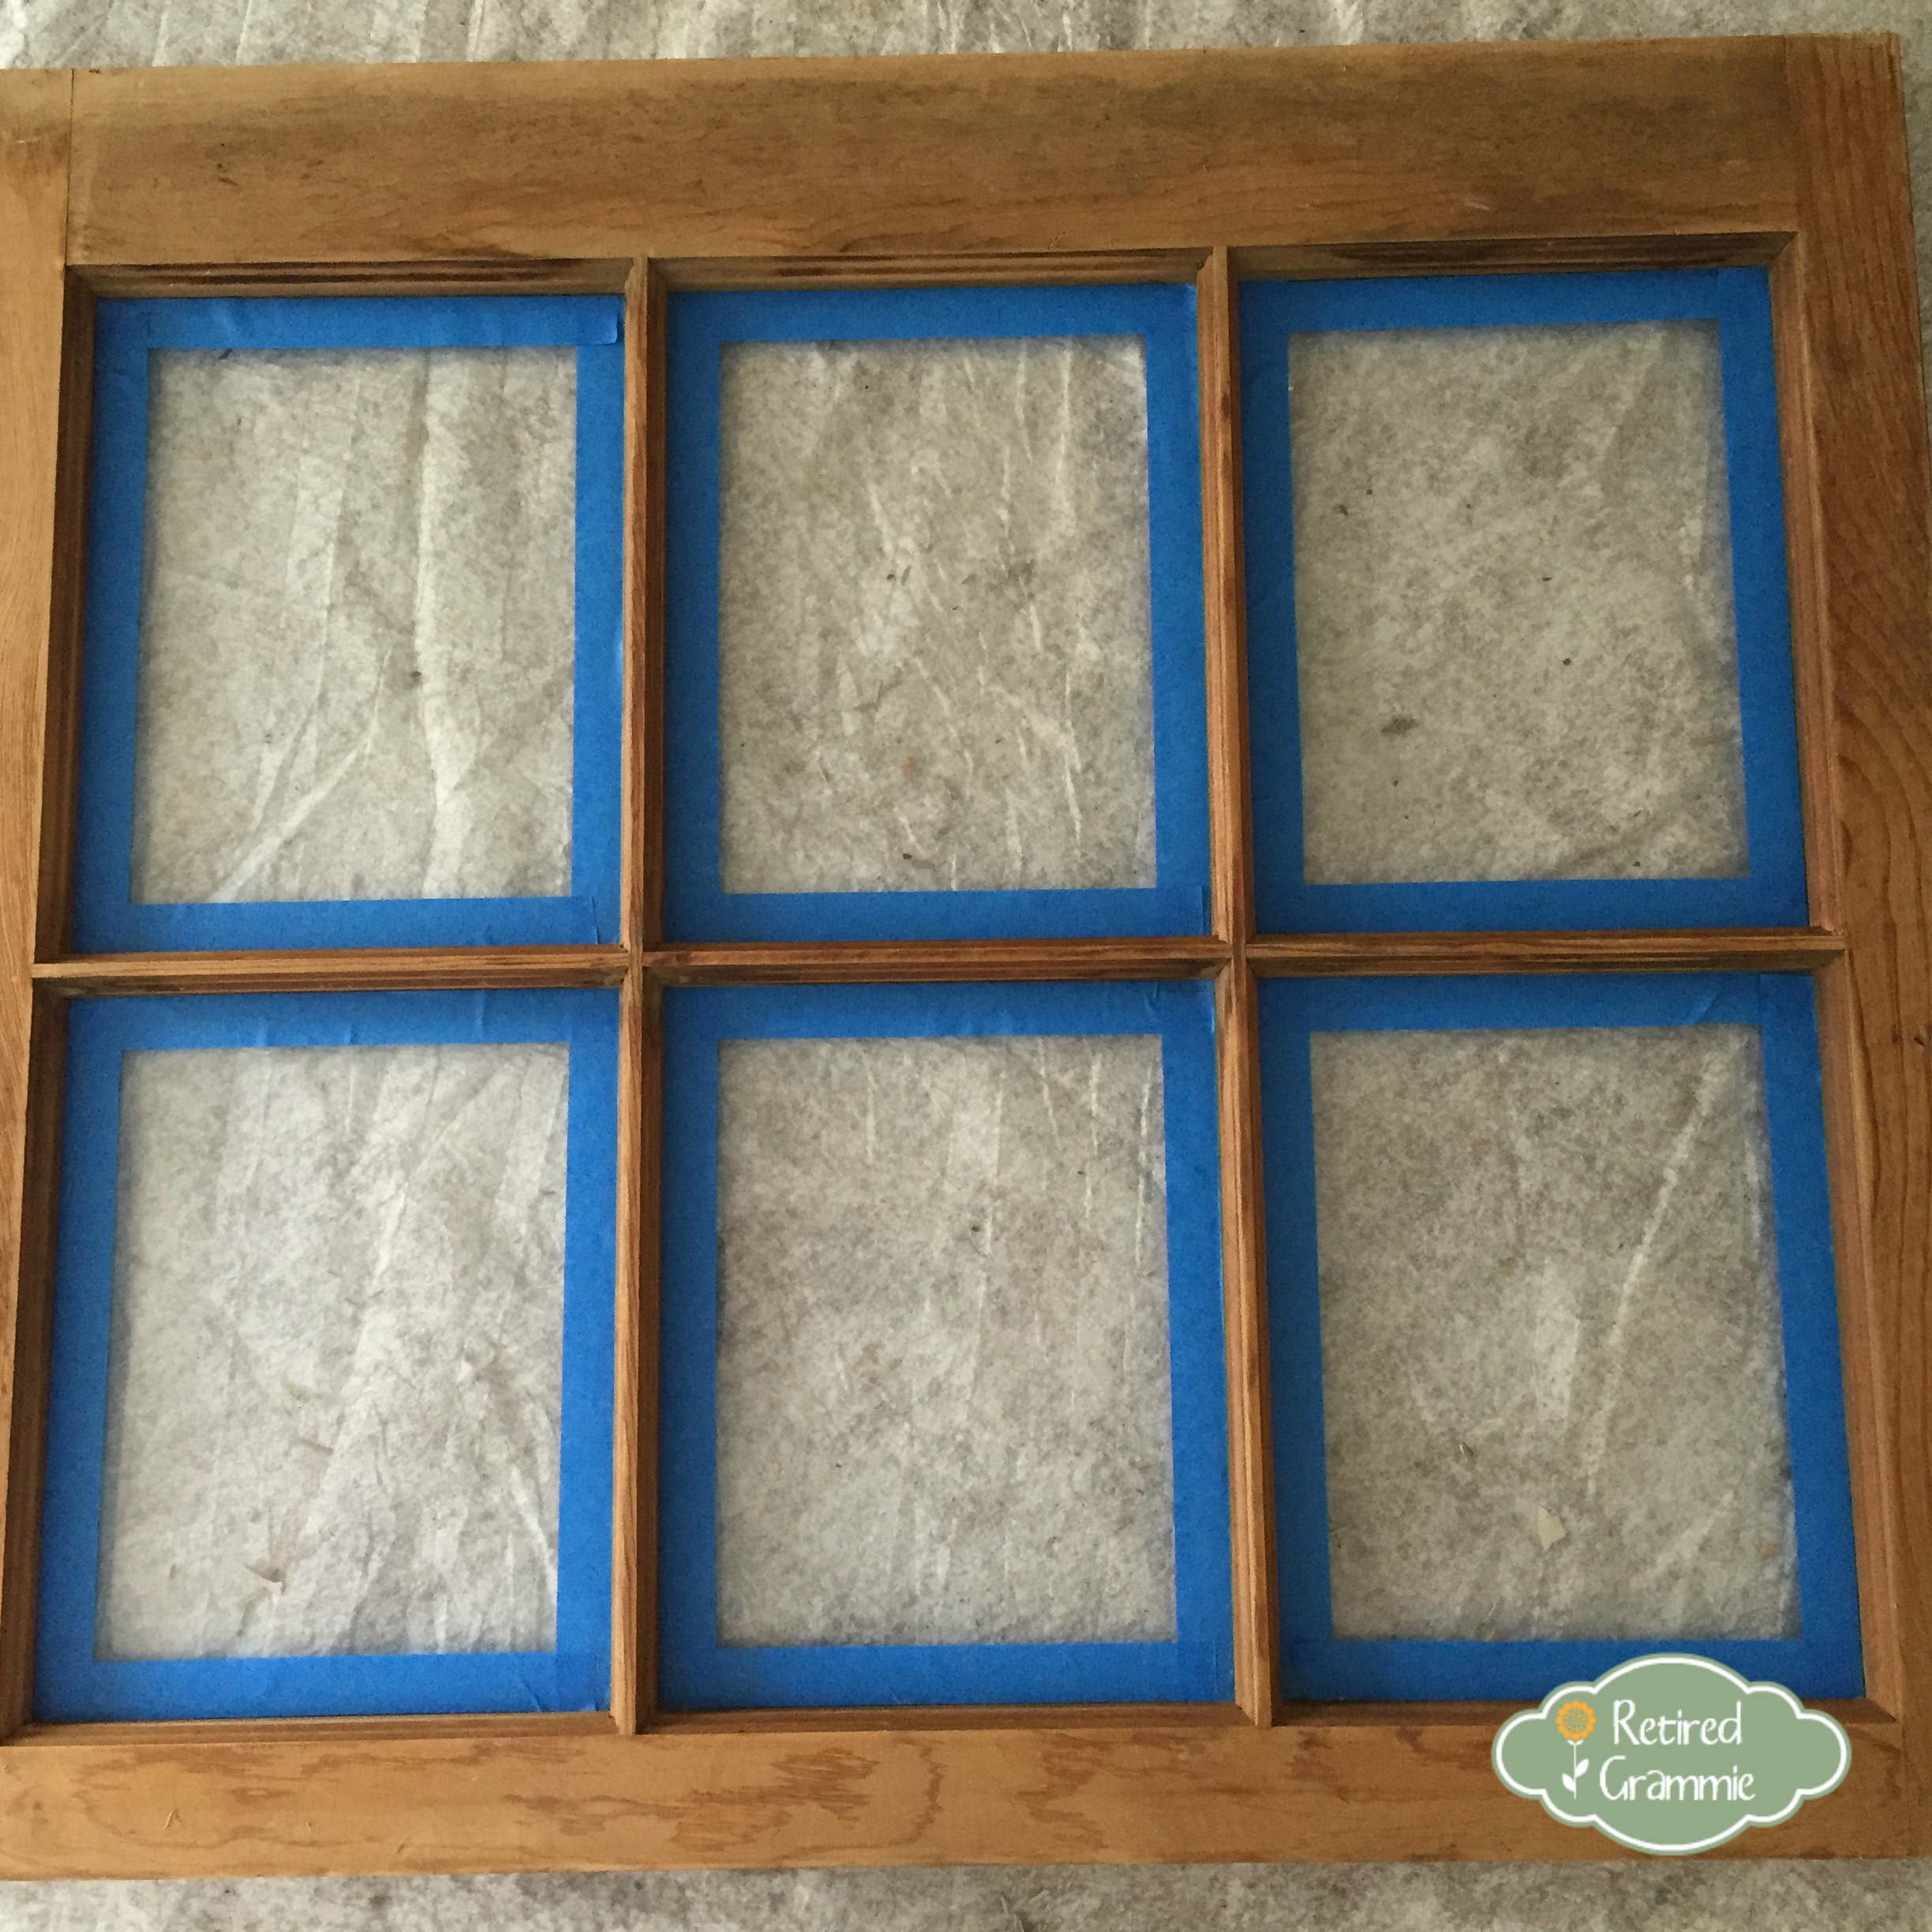 Diy Picture Frame With Glass Diy Old Window Picture Frames Retired Grammie